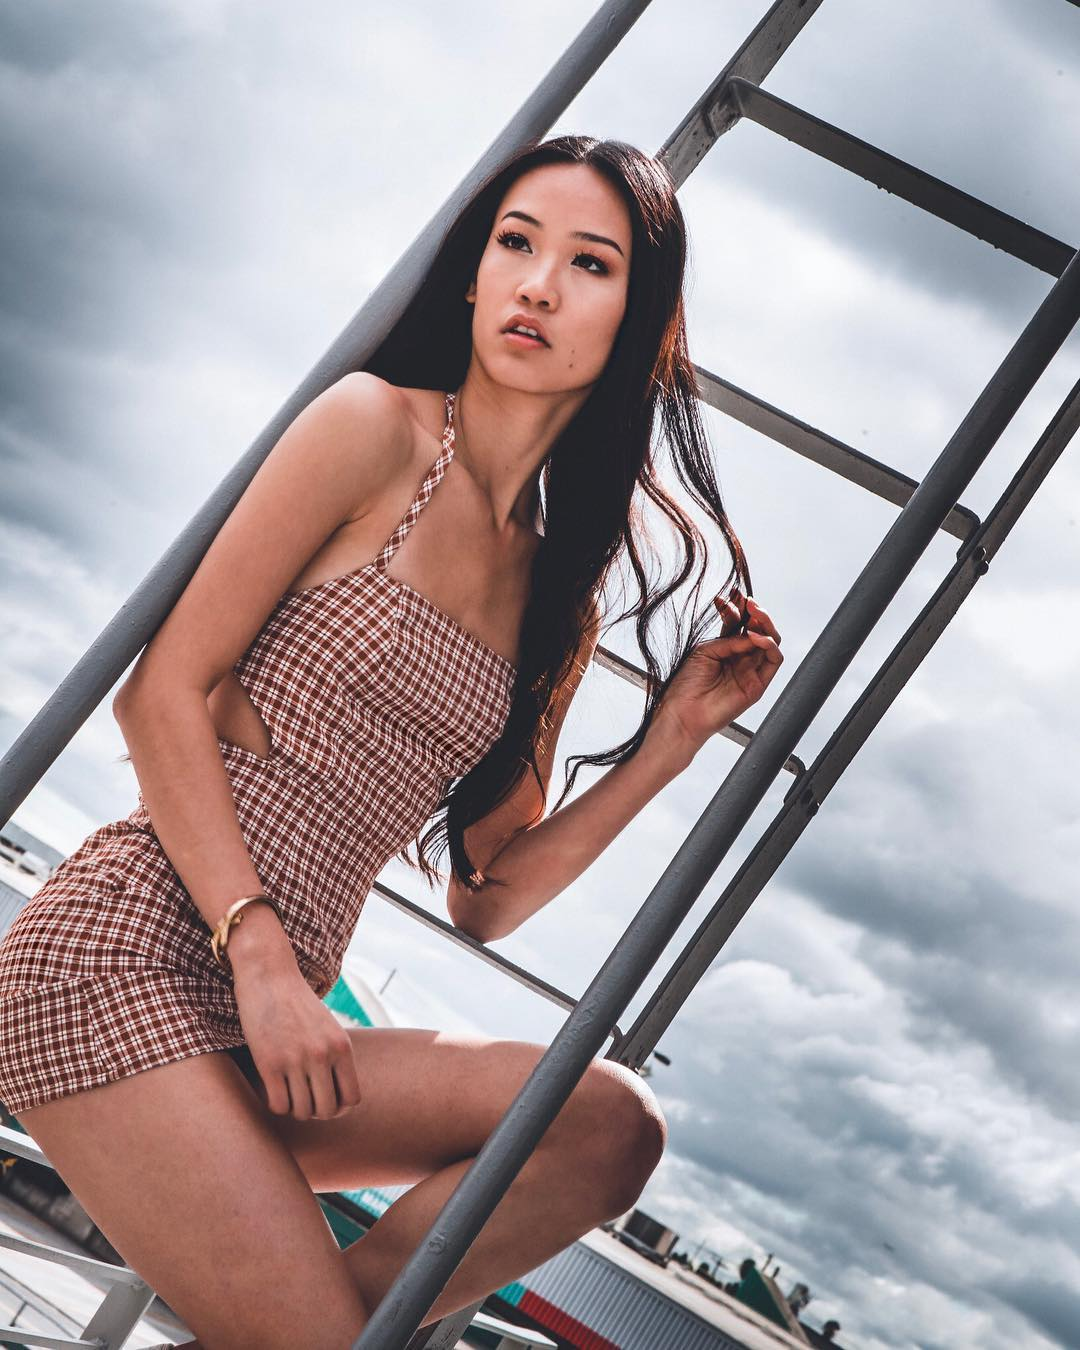 Aileen Chiu is a model that appeared in Lil Mosey Greet Her